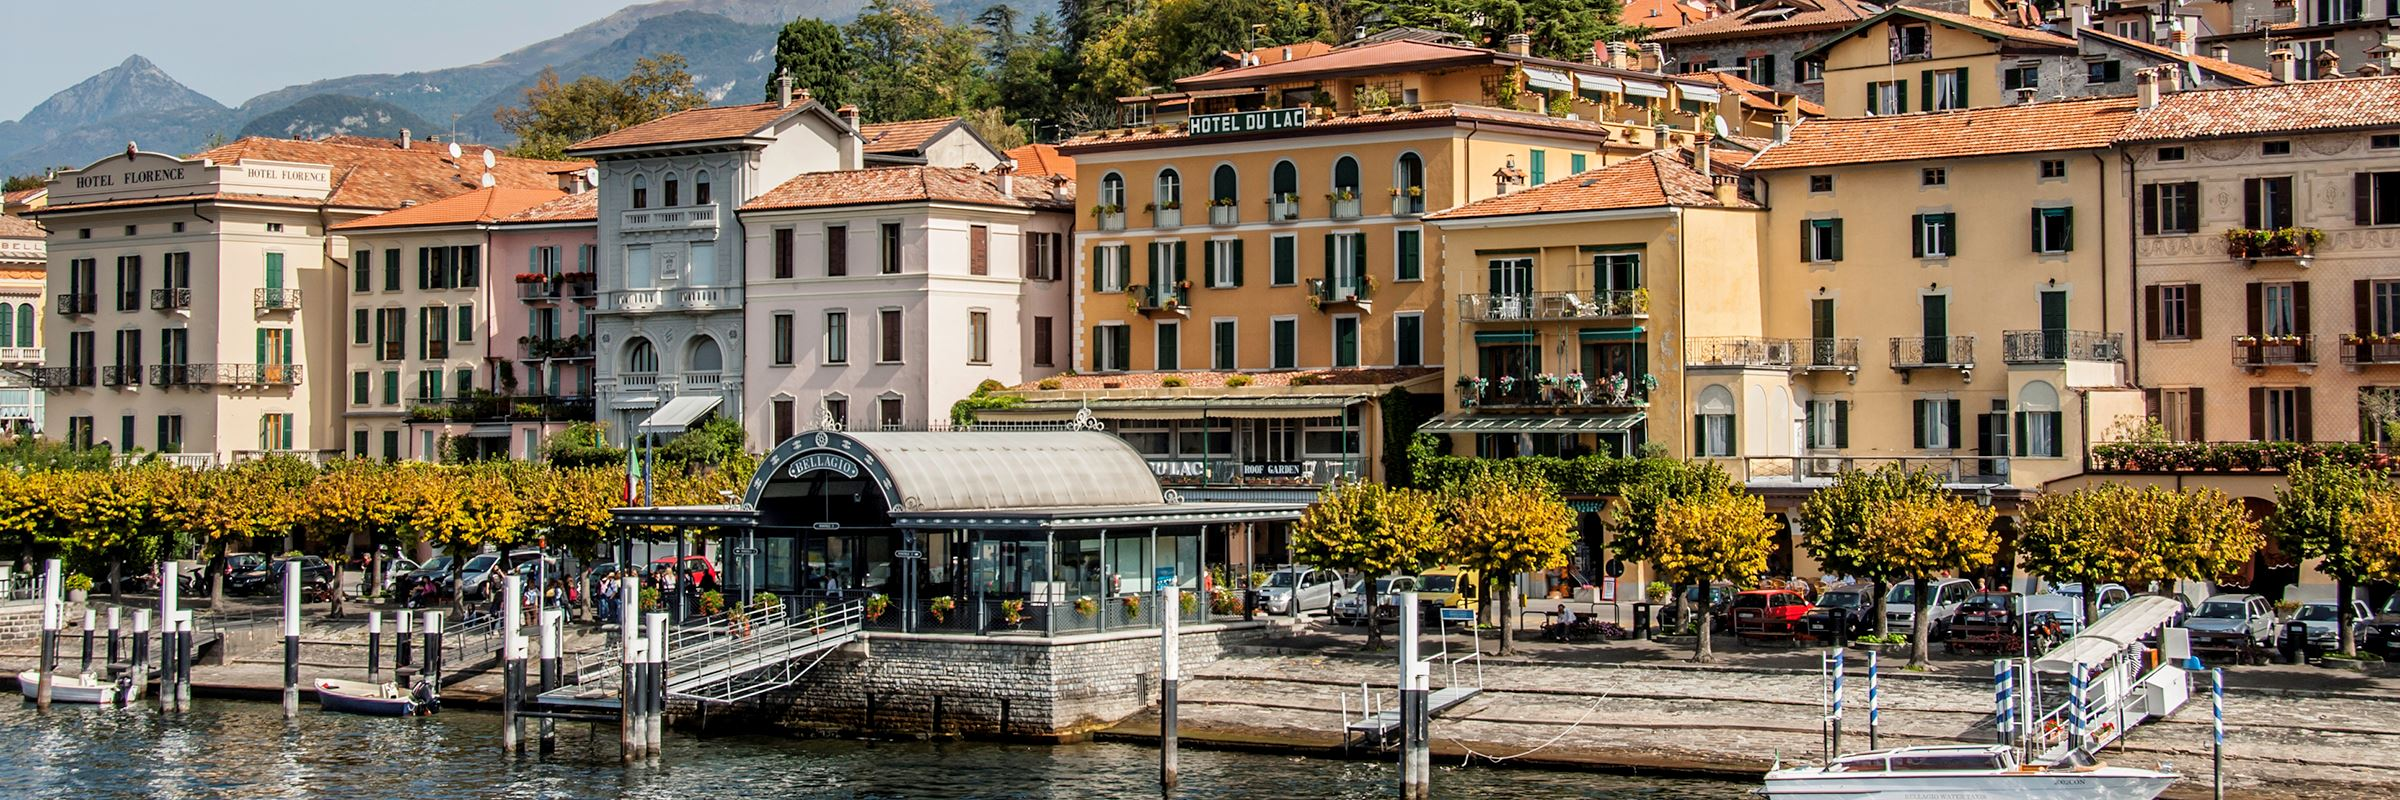 Camping Bellagio Tailor Made Vacations In Bellagio Audley Travel